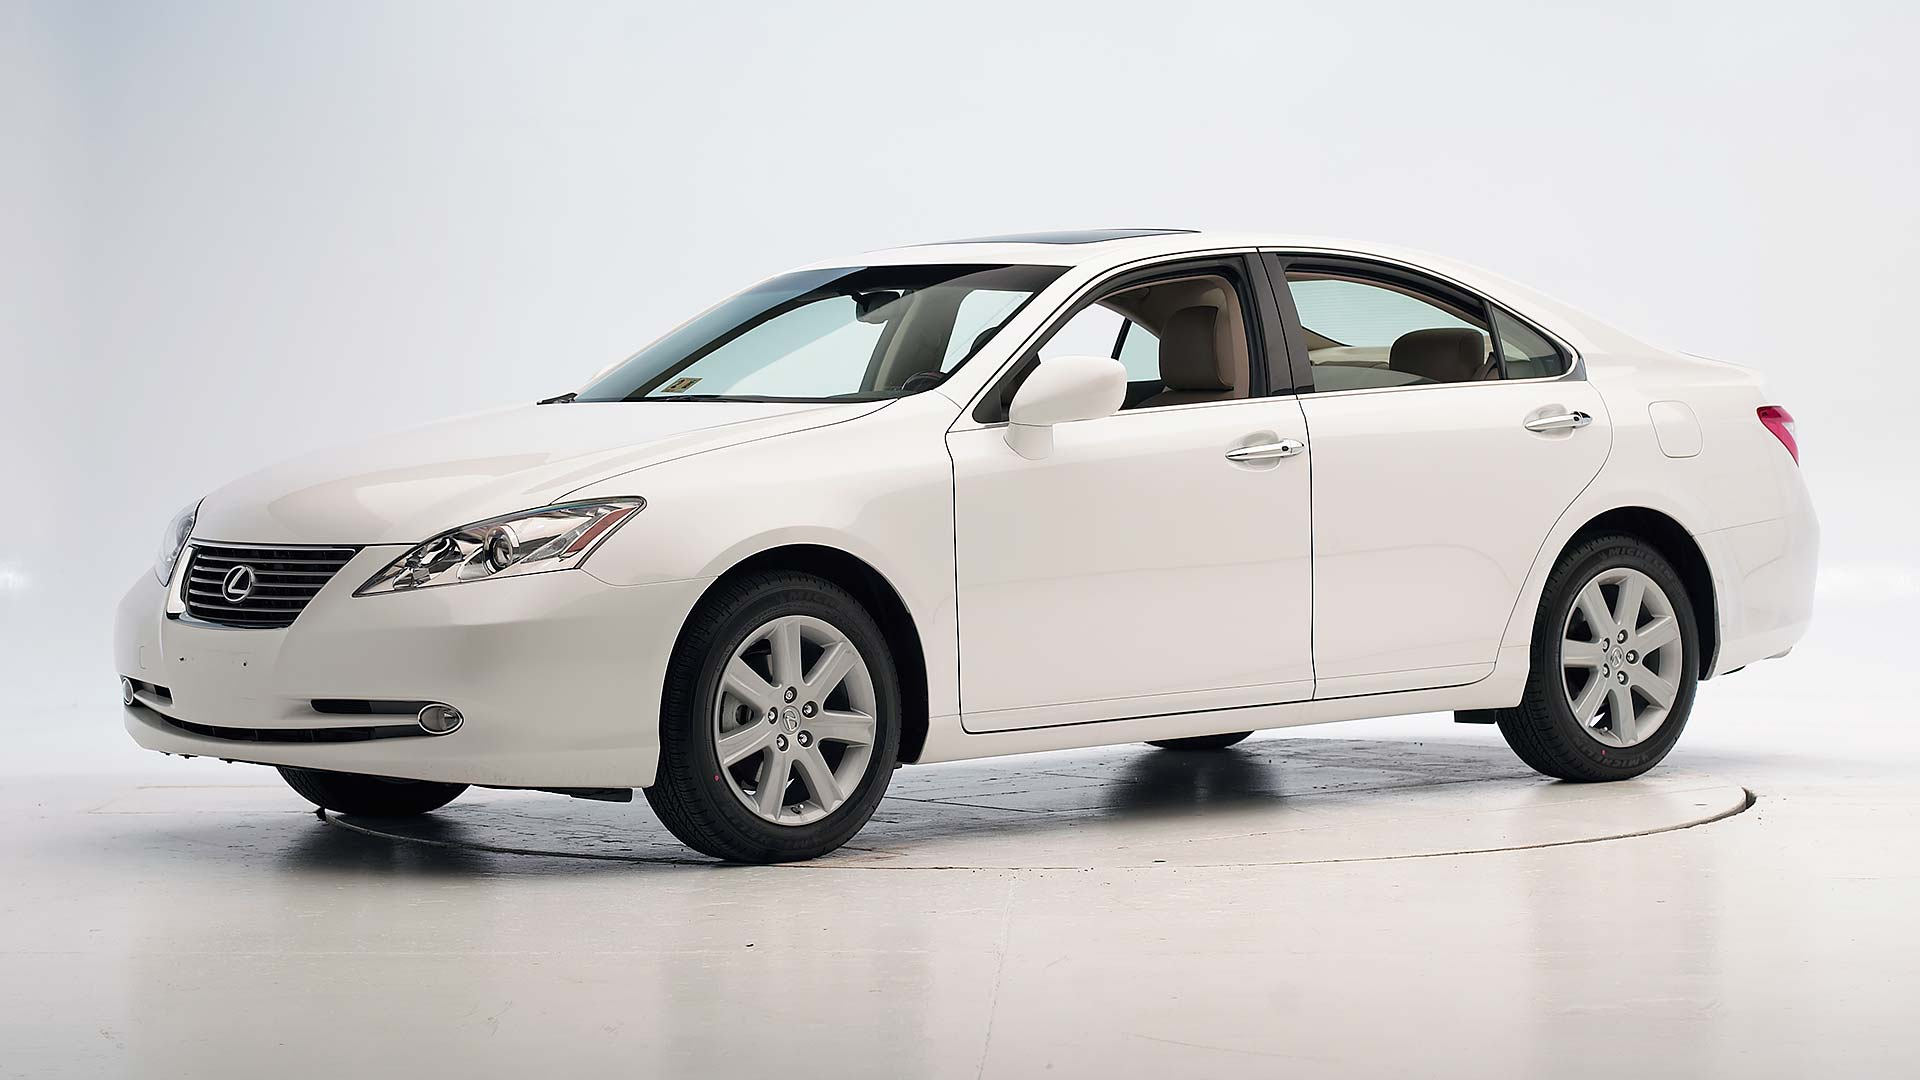 2008 Lexus ES 350 4-door sedan